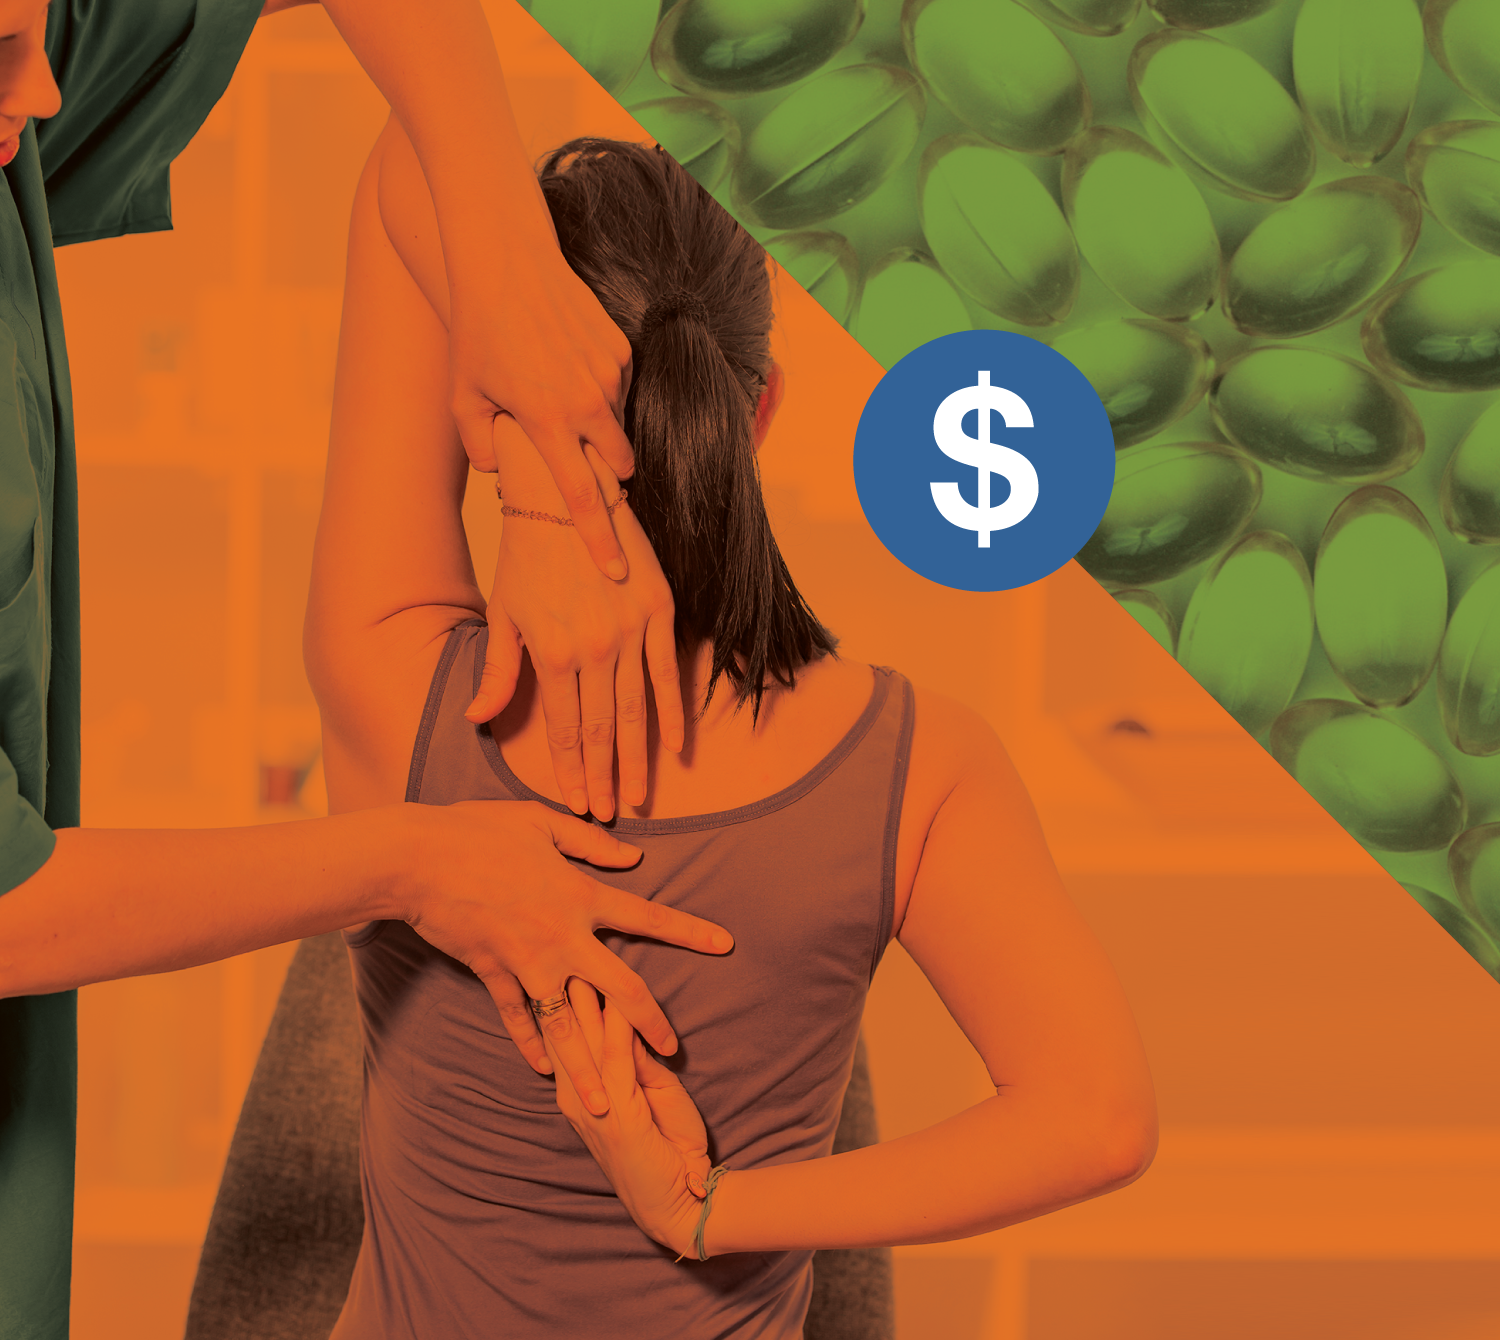 a dollar sign sits on top of a split image, lower diagonal a yoga pose in orange, above a bunch of pills in green. anouther split image, lower diagonal is a chiropracti pose in orange, above is a man recieving massage in green.